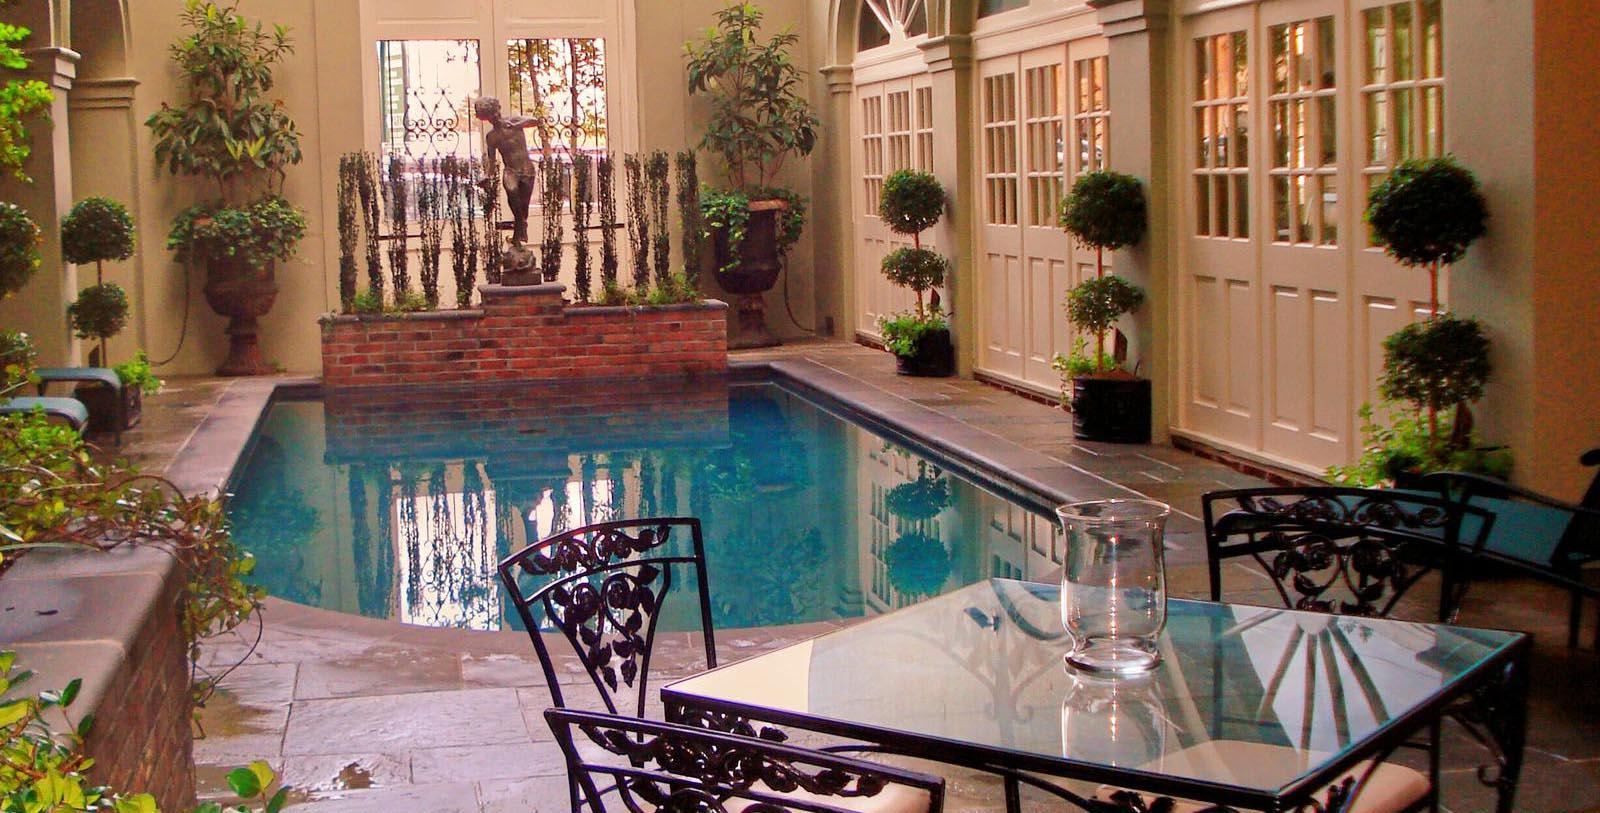 Image of interior pool at Bienville House, 1835, Member of Historic Hotels of America, in New Orleans, Louisiana, Explore